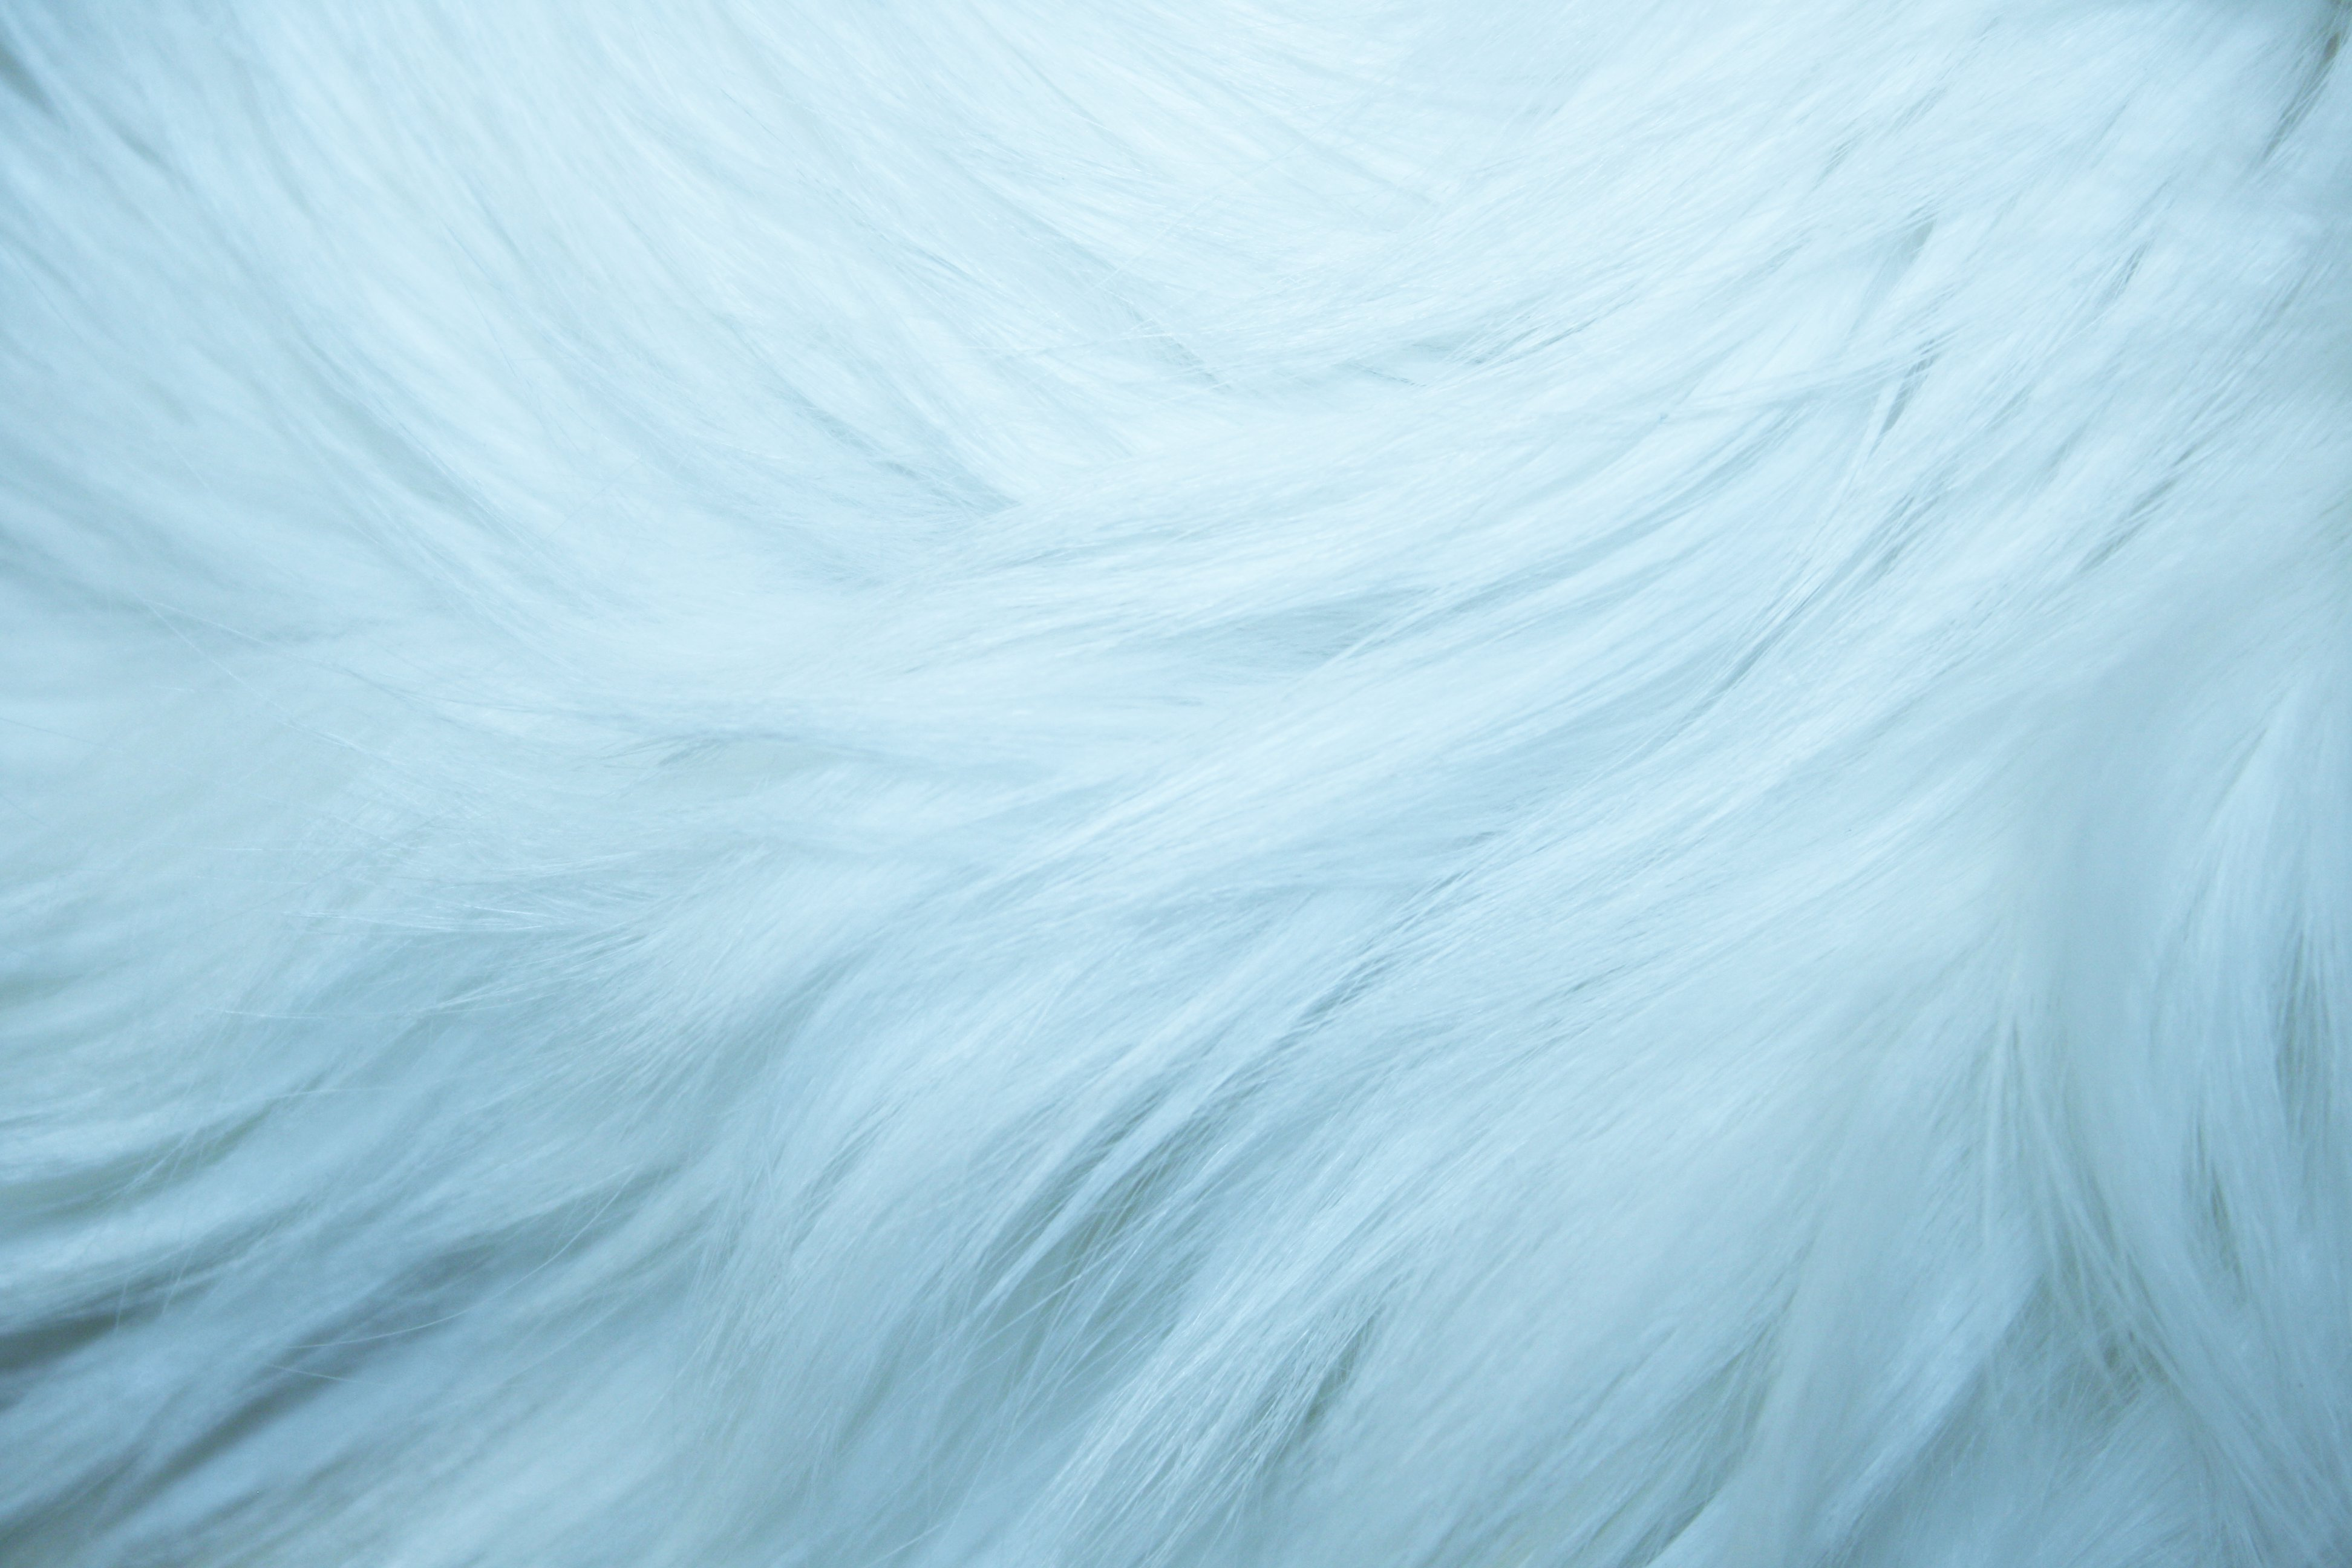 Baby Blue Fur Texture   High Resolution Photo   Dimensions 3888 3888x2592